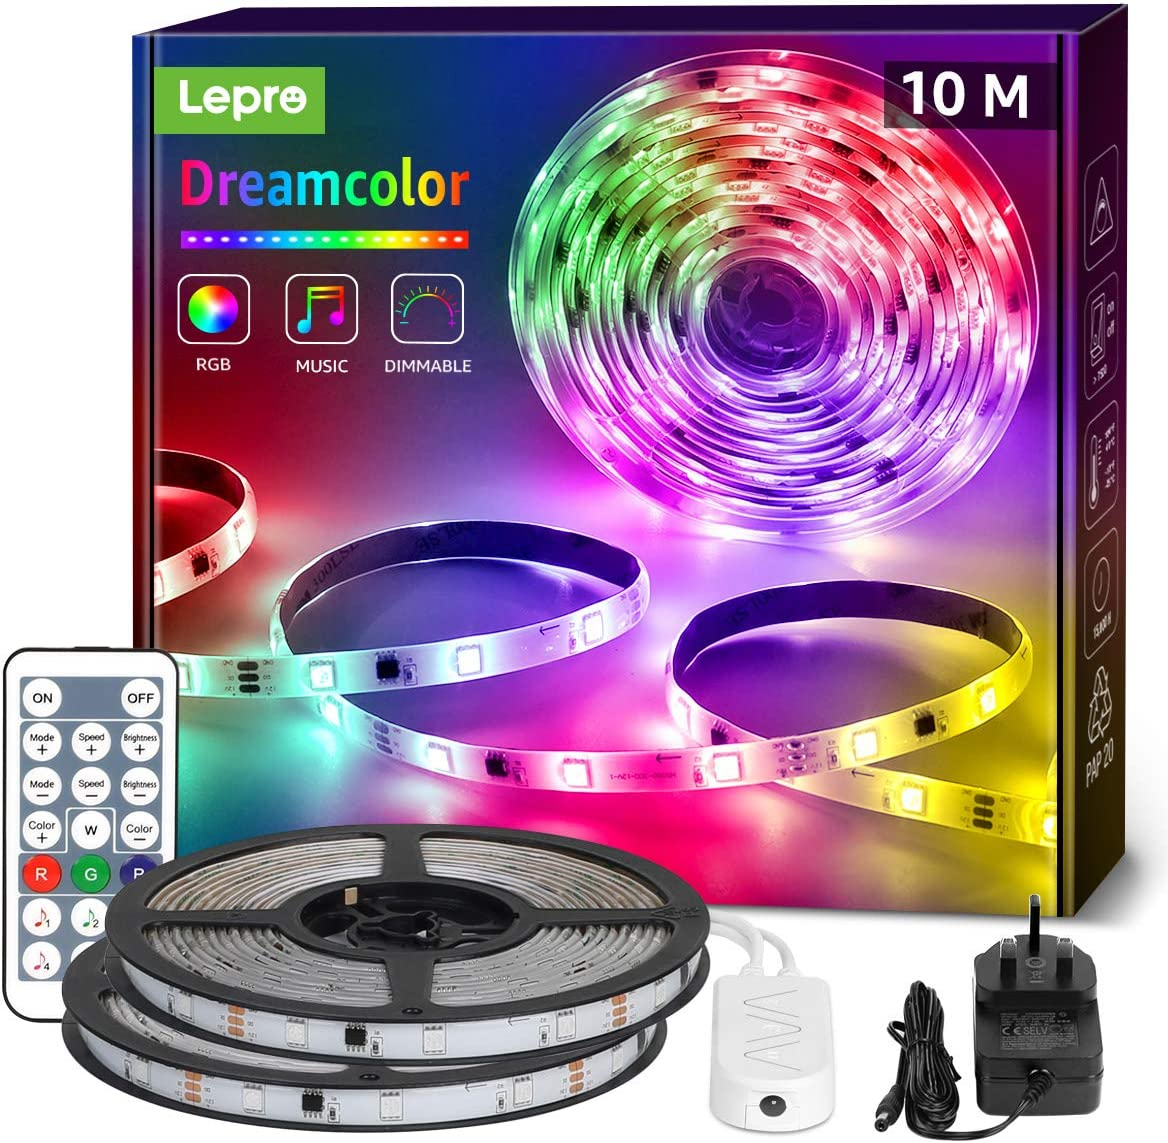 Lepro 10M Dreamcolor LED Strip Lights with Remote for £26.35